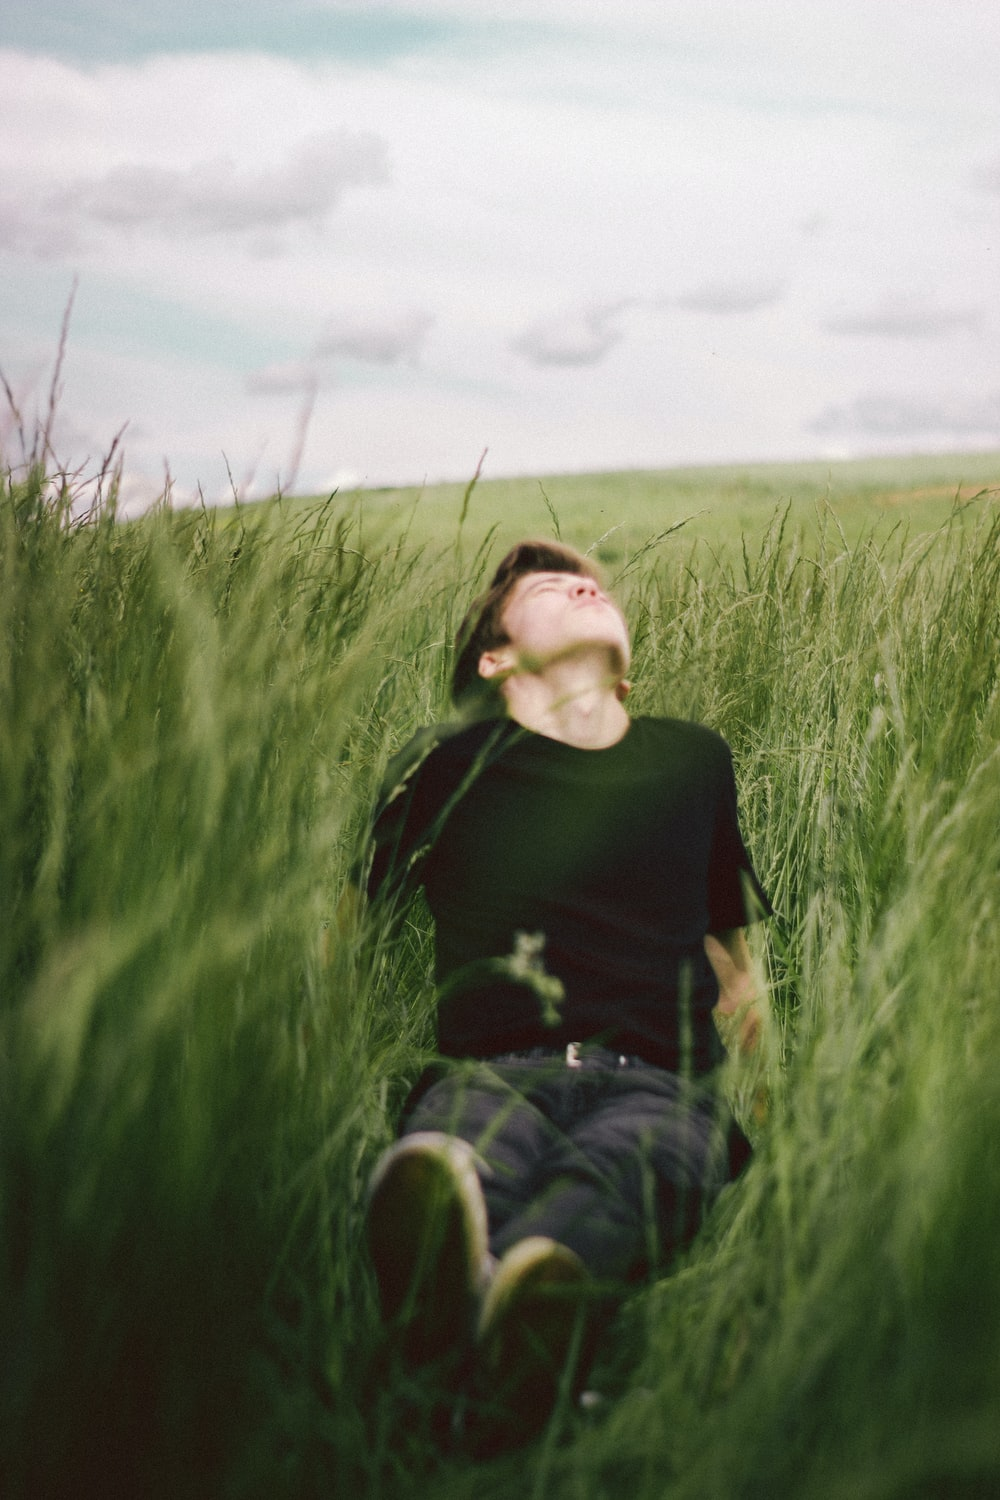 woman in black long sleeve shirt and blue denim jeans sitting on green grass field during